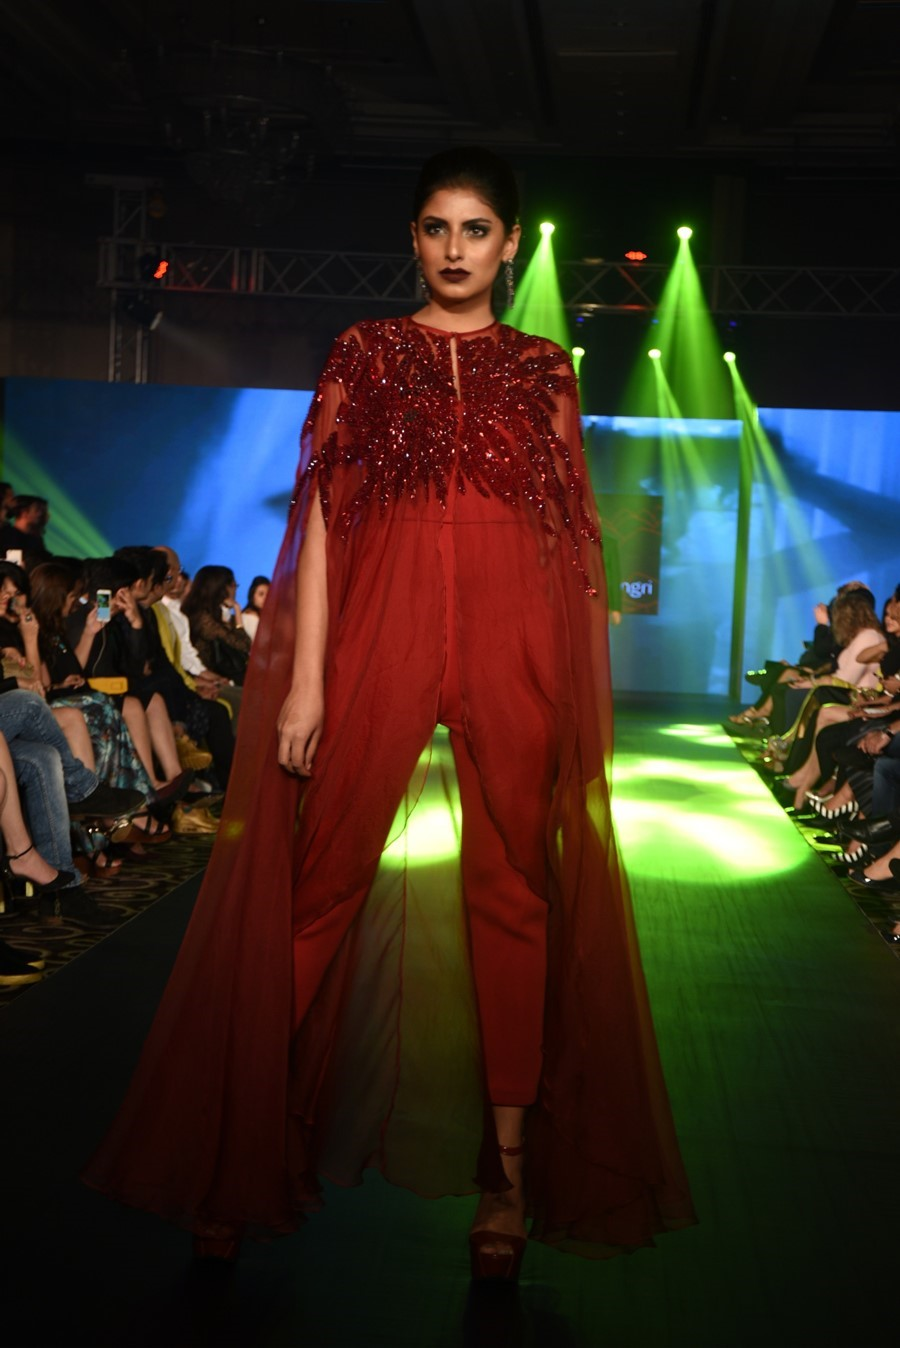 rajat-tangri-numaish-winter-show-dubai-fashion-indian-designer-blog-3